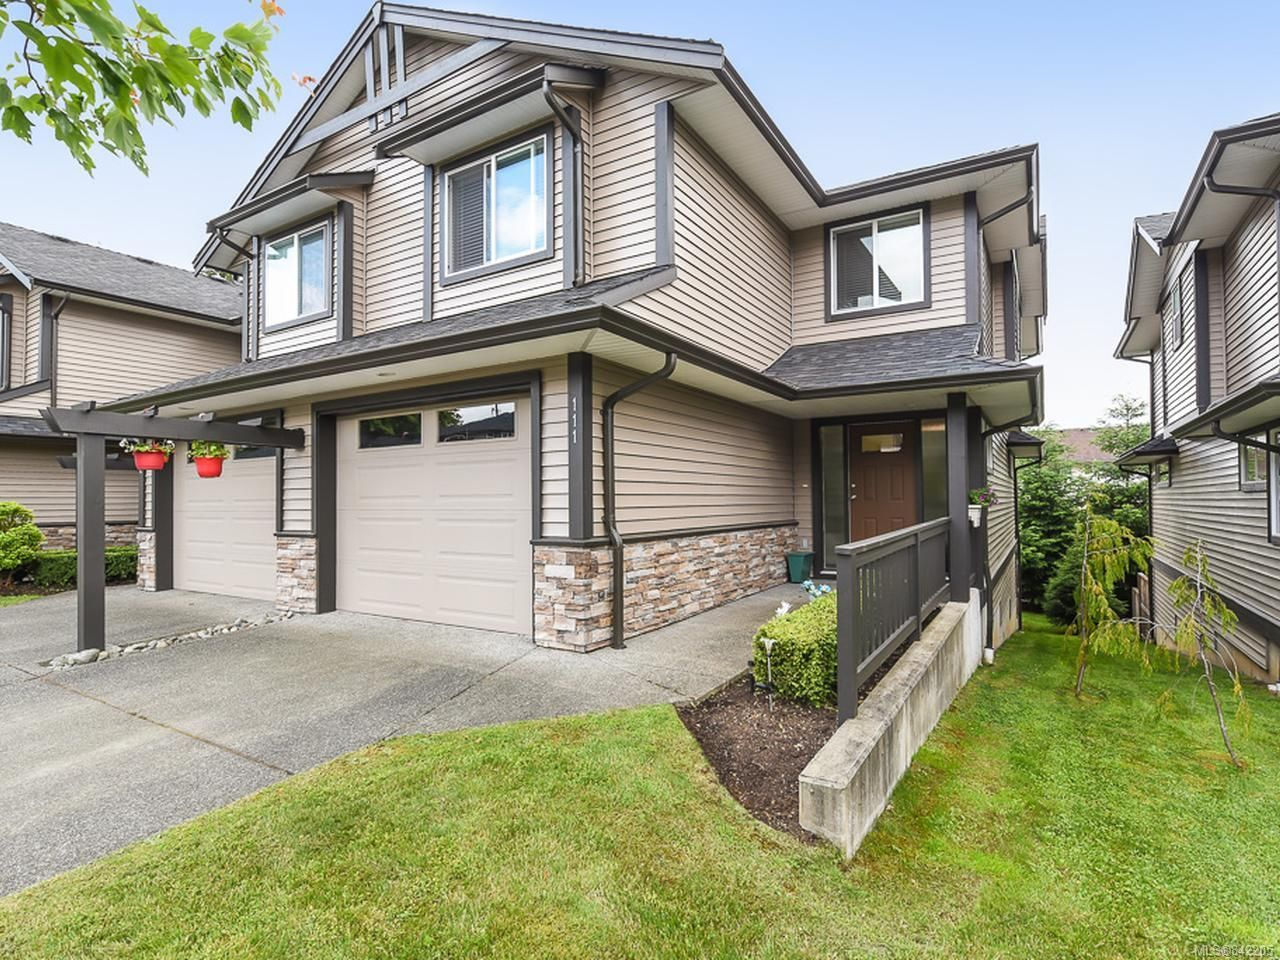 Main Photo: 111 4699 Muir Rd in COURTENAY: CV Courtenay East Row/Townhouse for sale (Comox Valley)  : MLS®# 842205